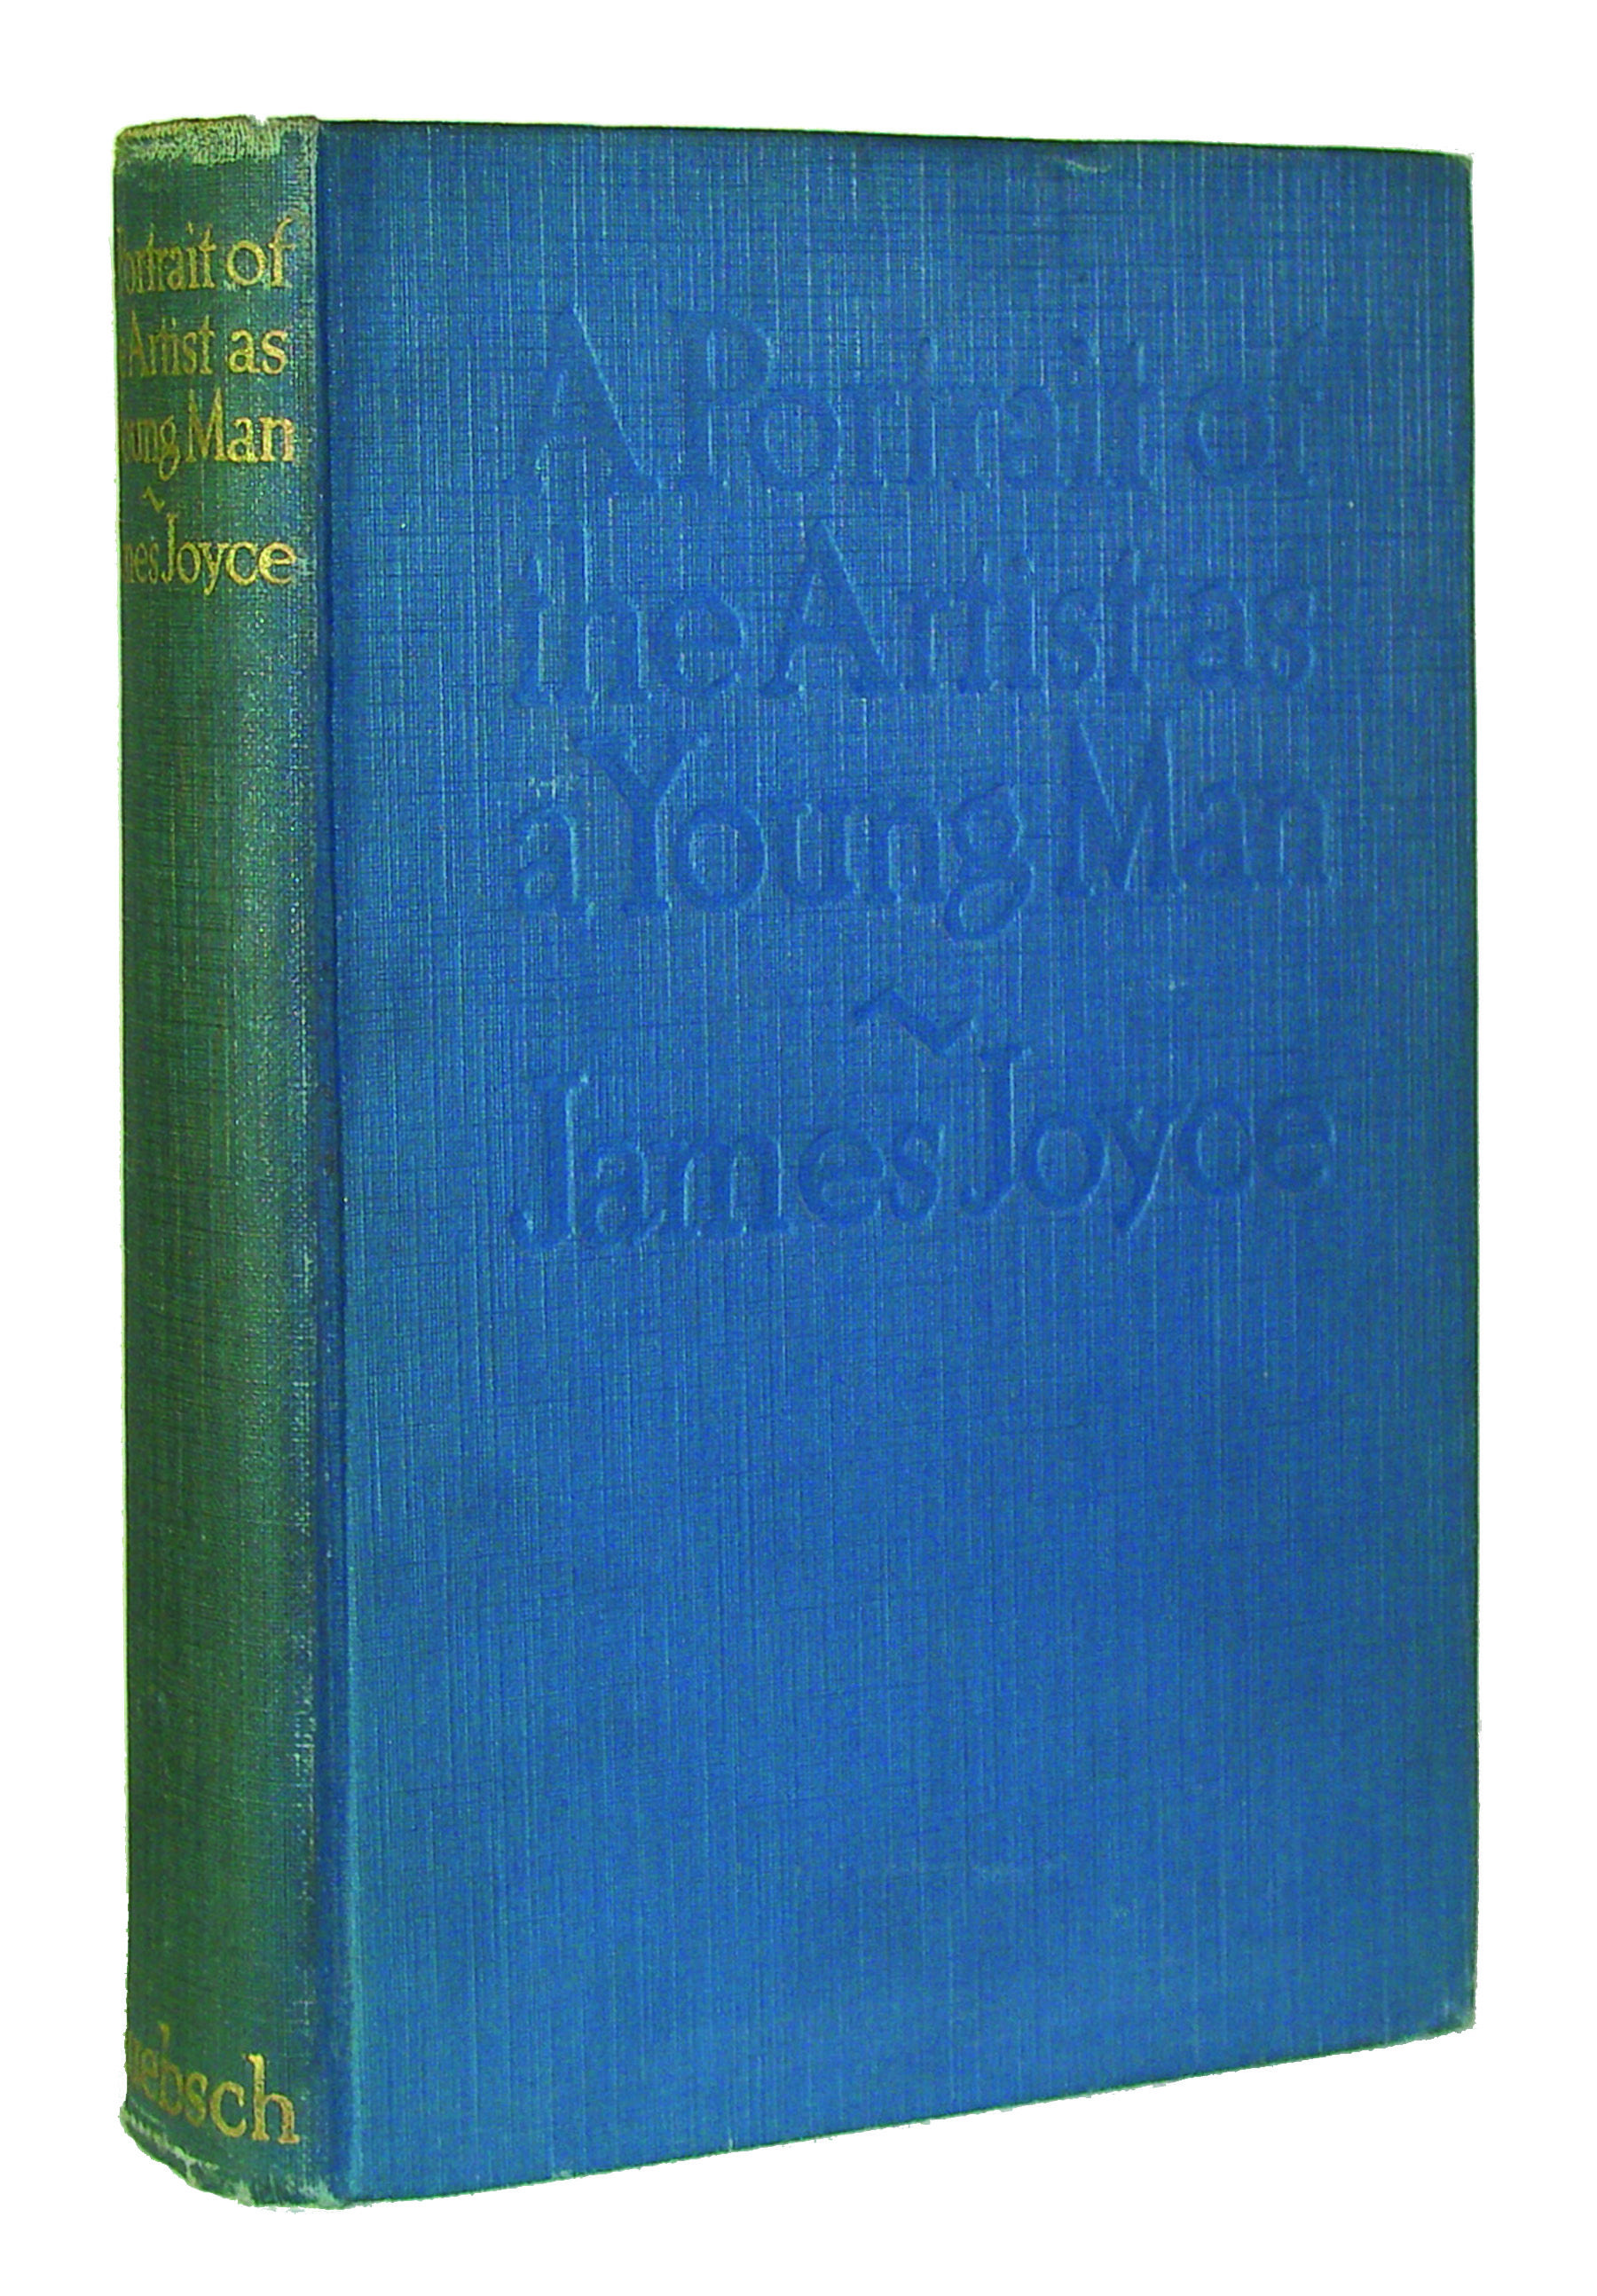 DECEMBER 29 On this day in 1916, James Joyce's Portrait of the Artist as a Young Man is published in New York